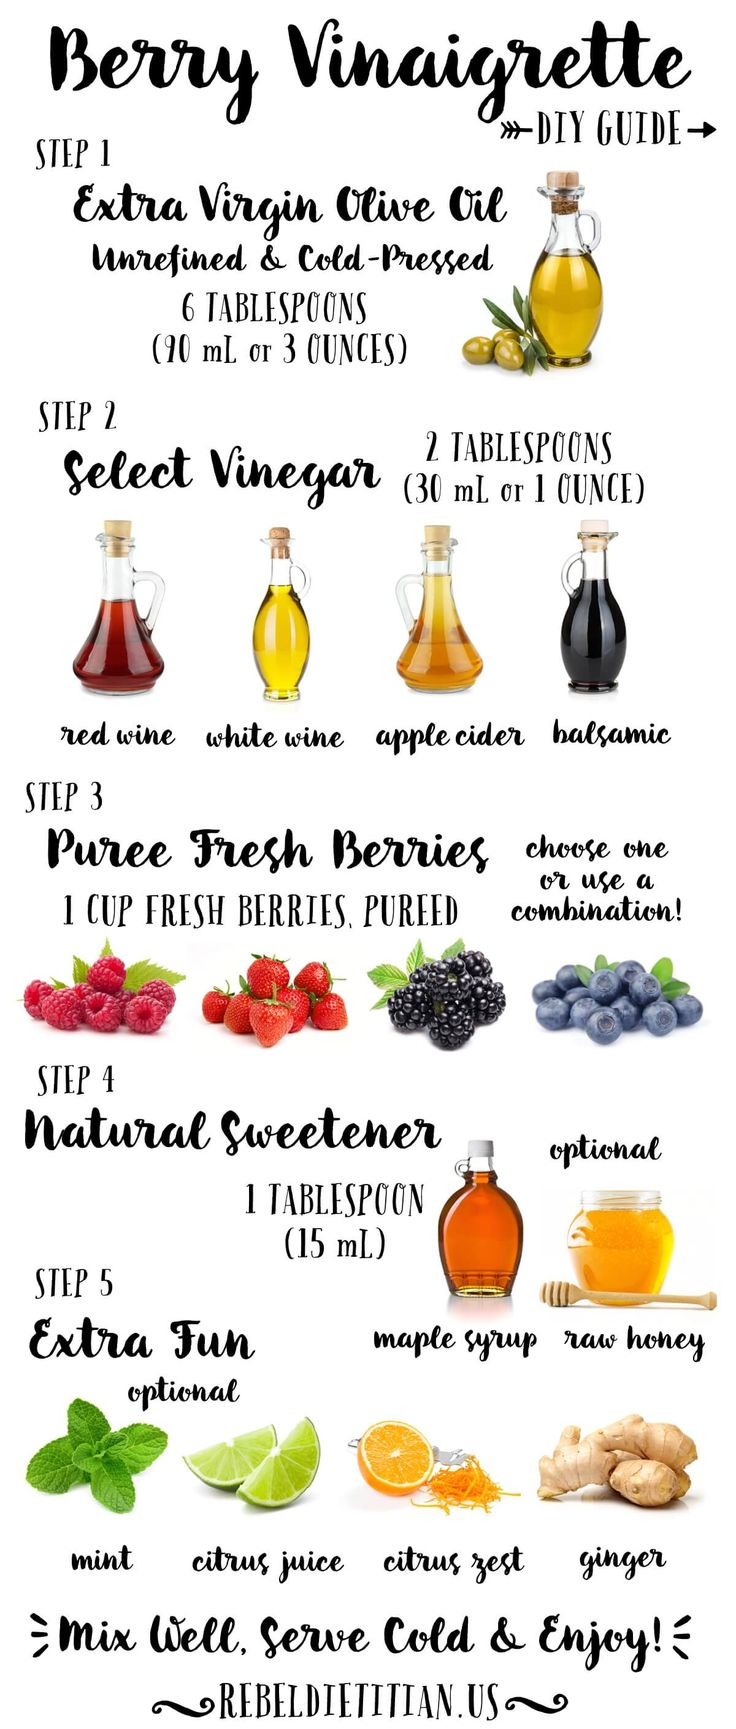 Berry Vinaigrette Guide | rebelDIETITIAN.US